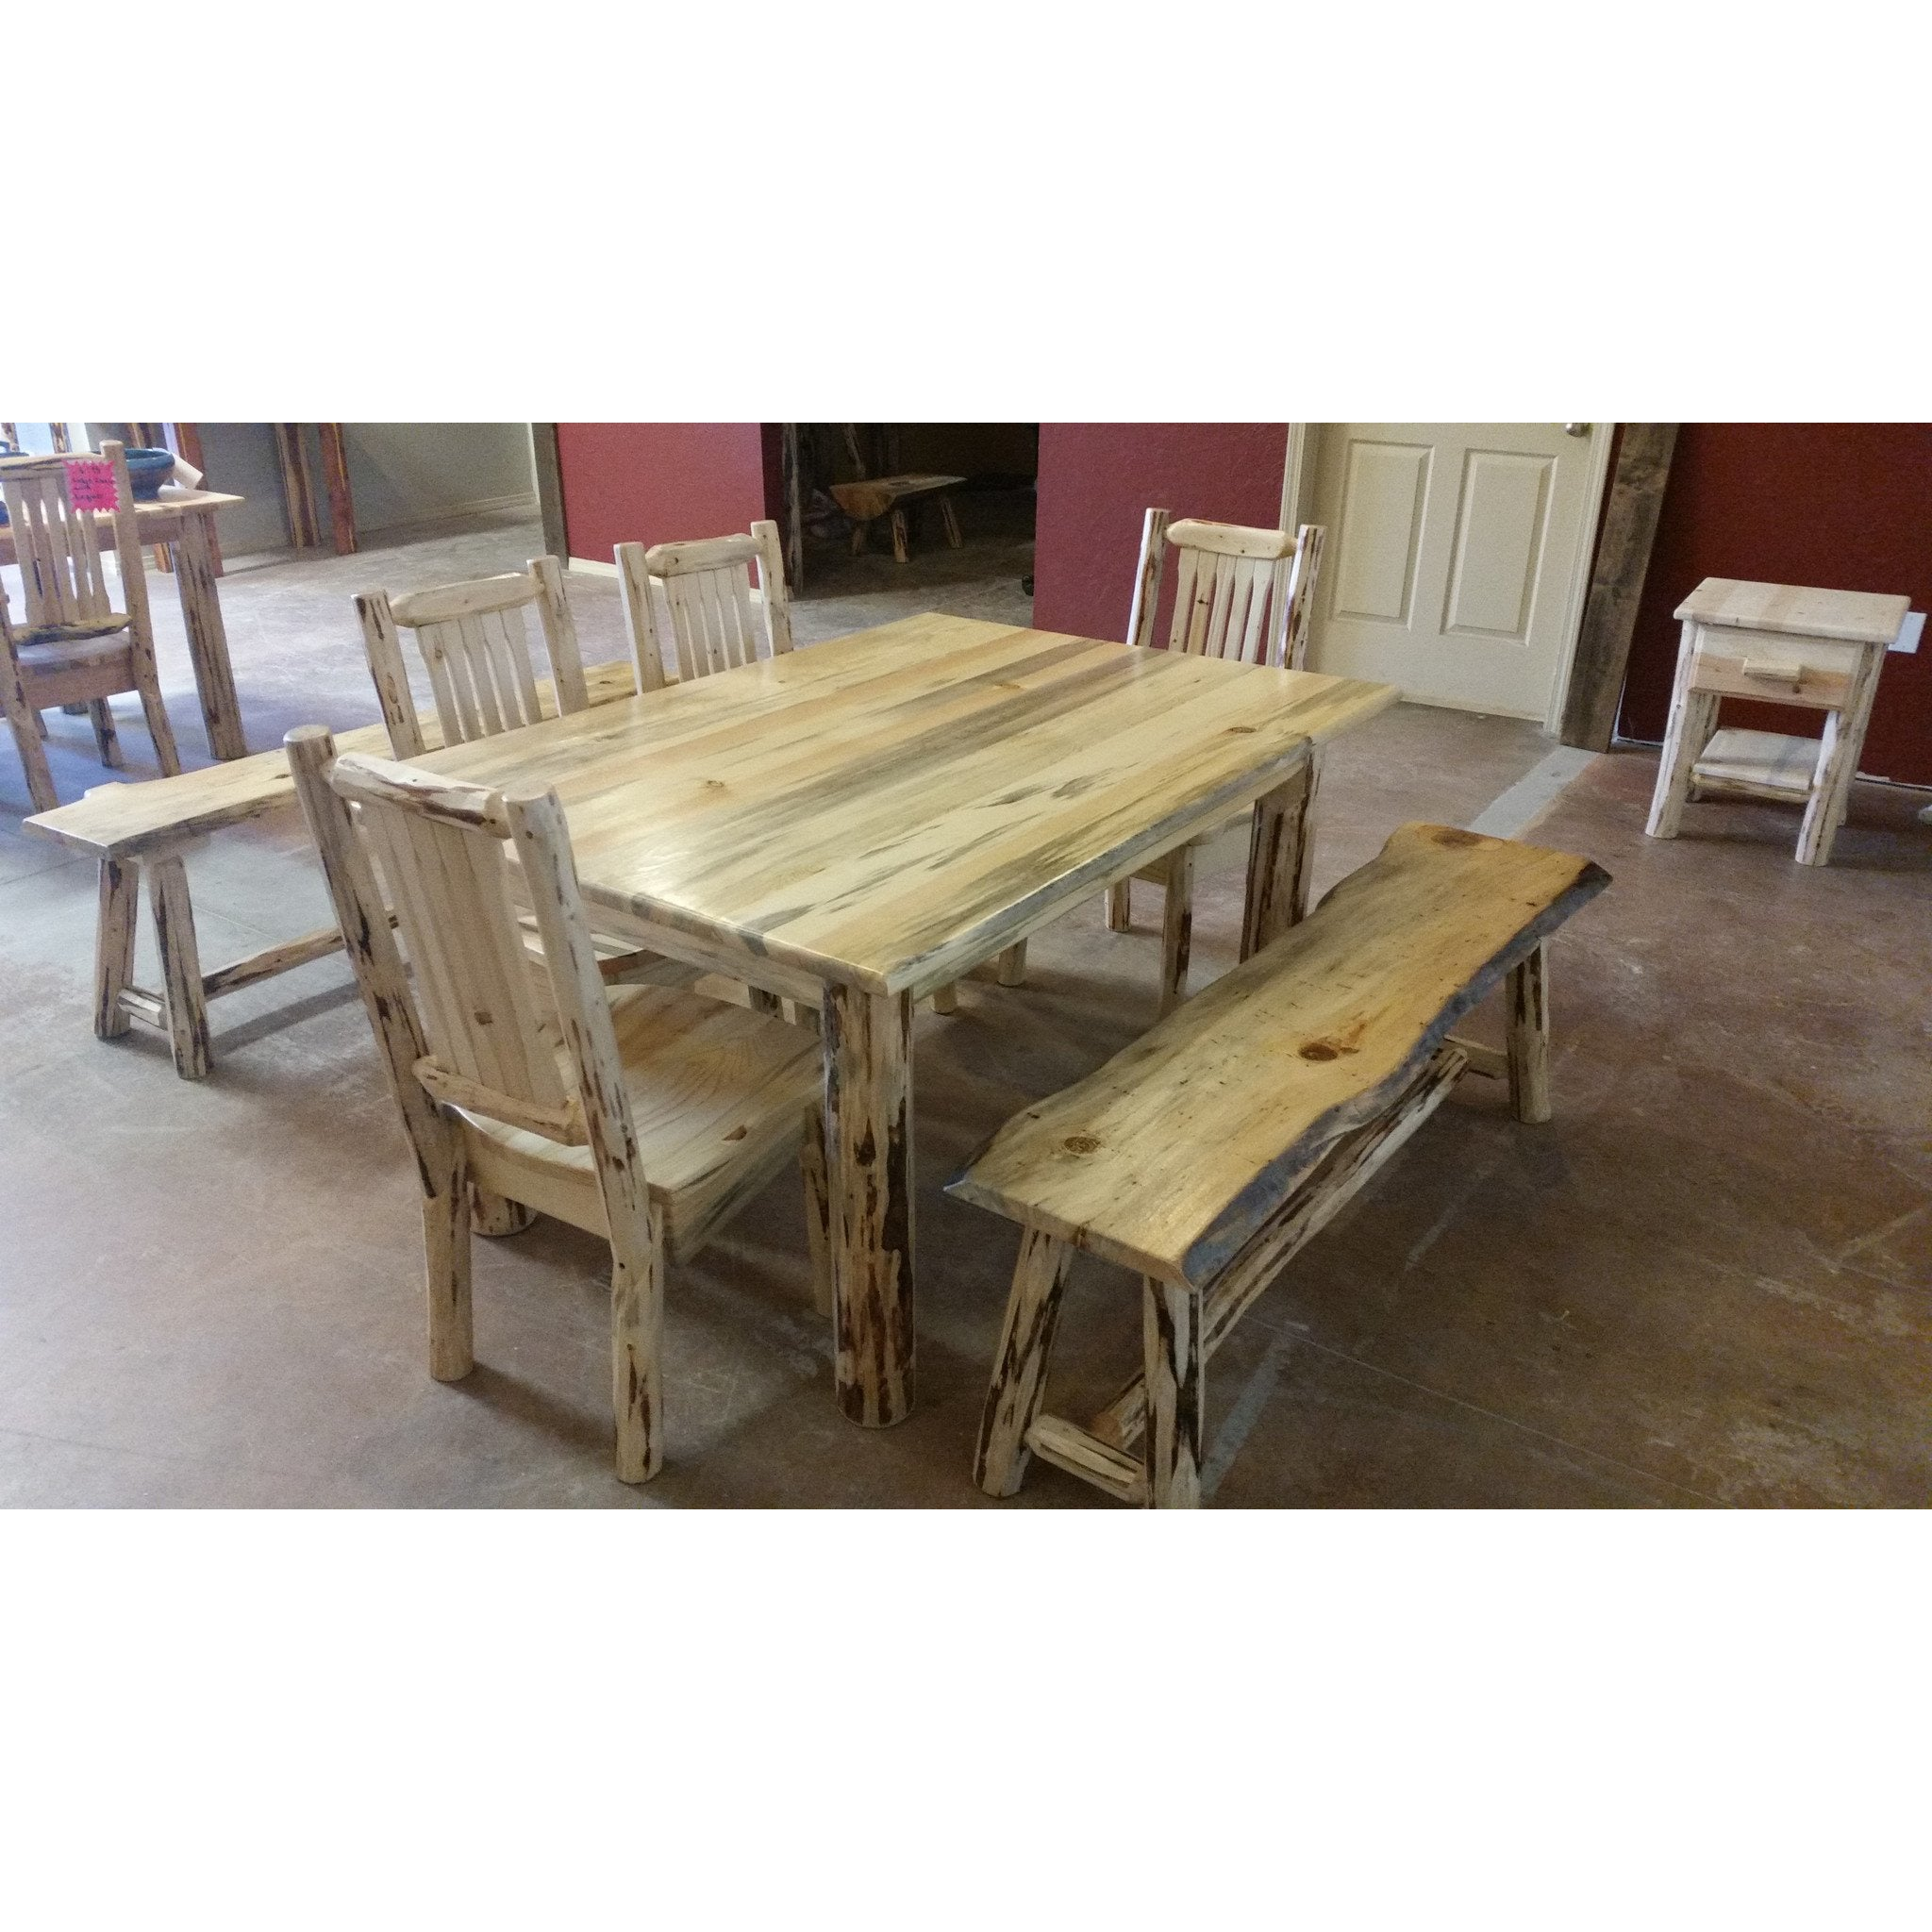 Montana Pioneer Rustic Log Dining Bench Great Northern